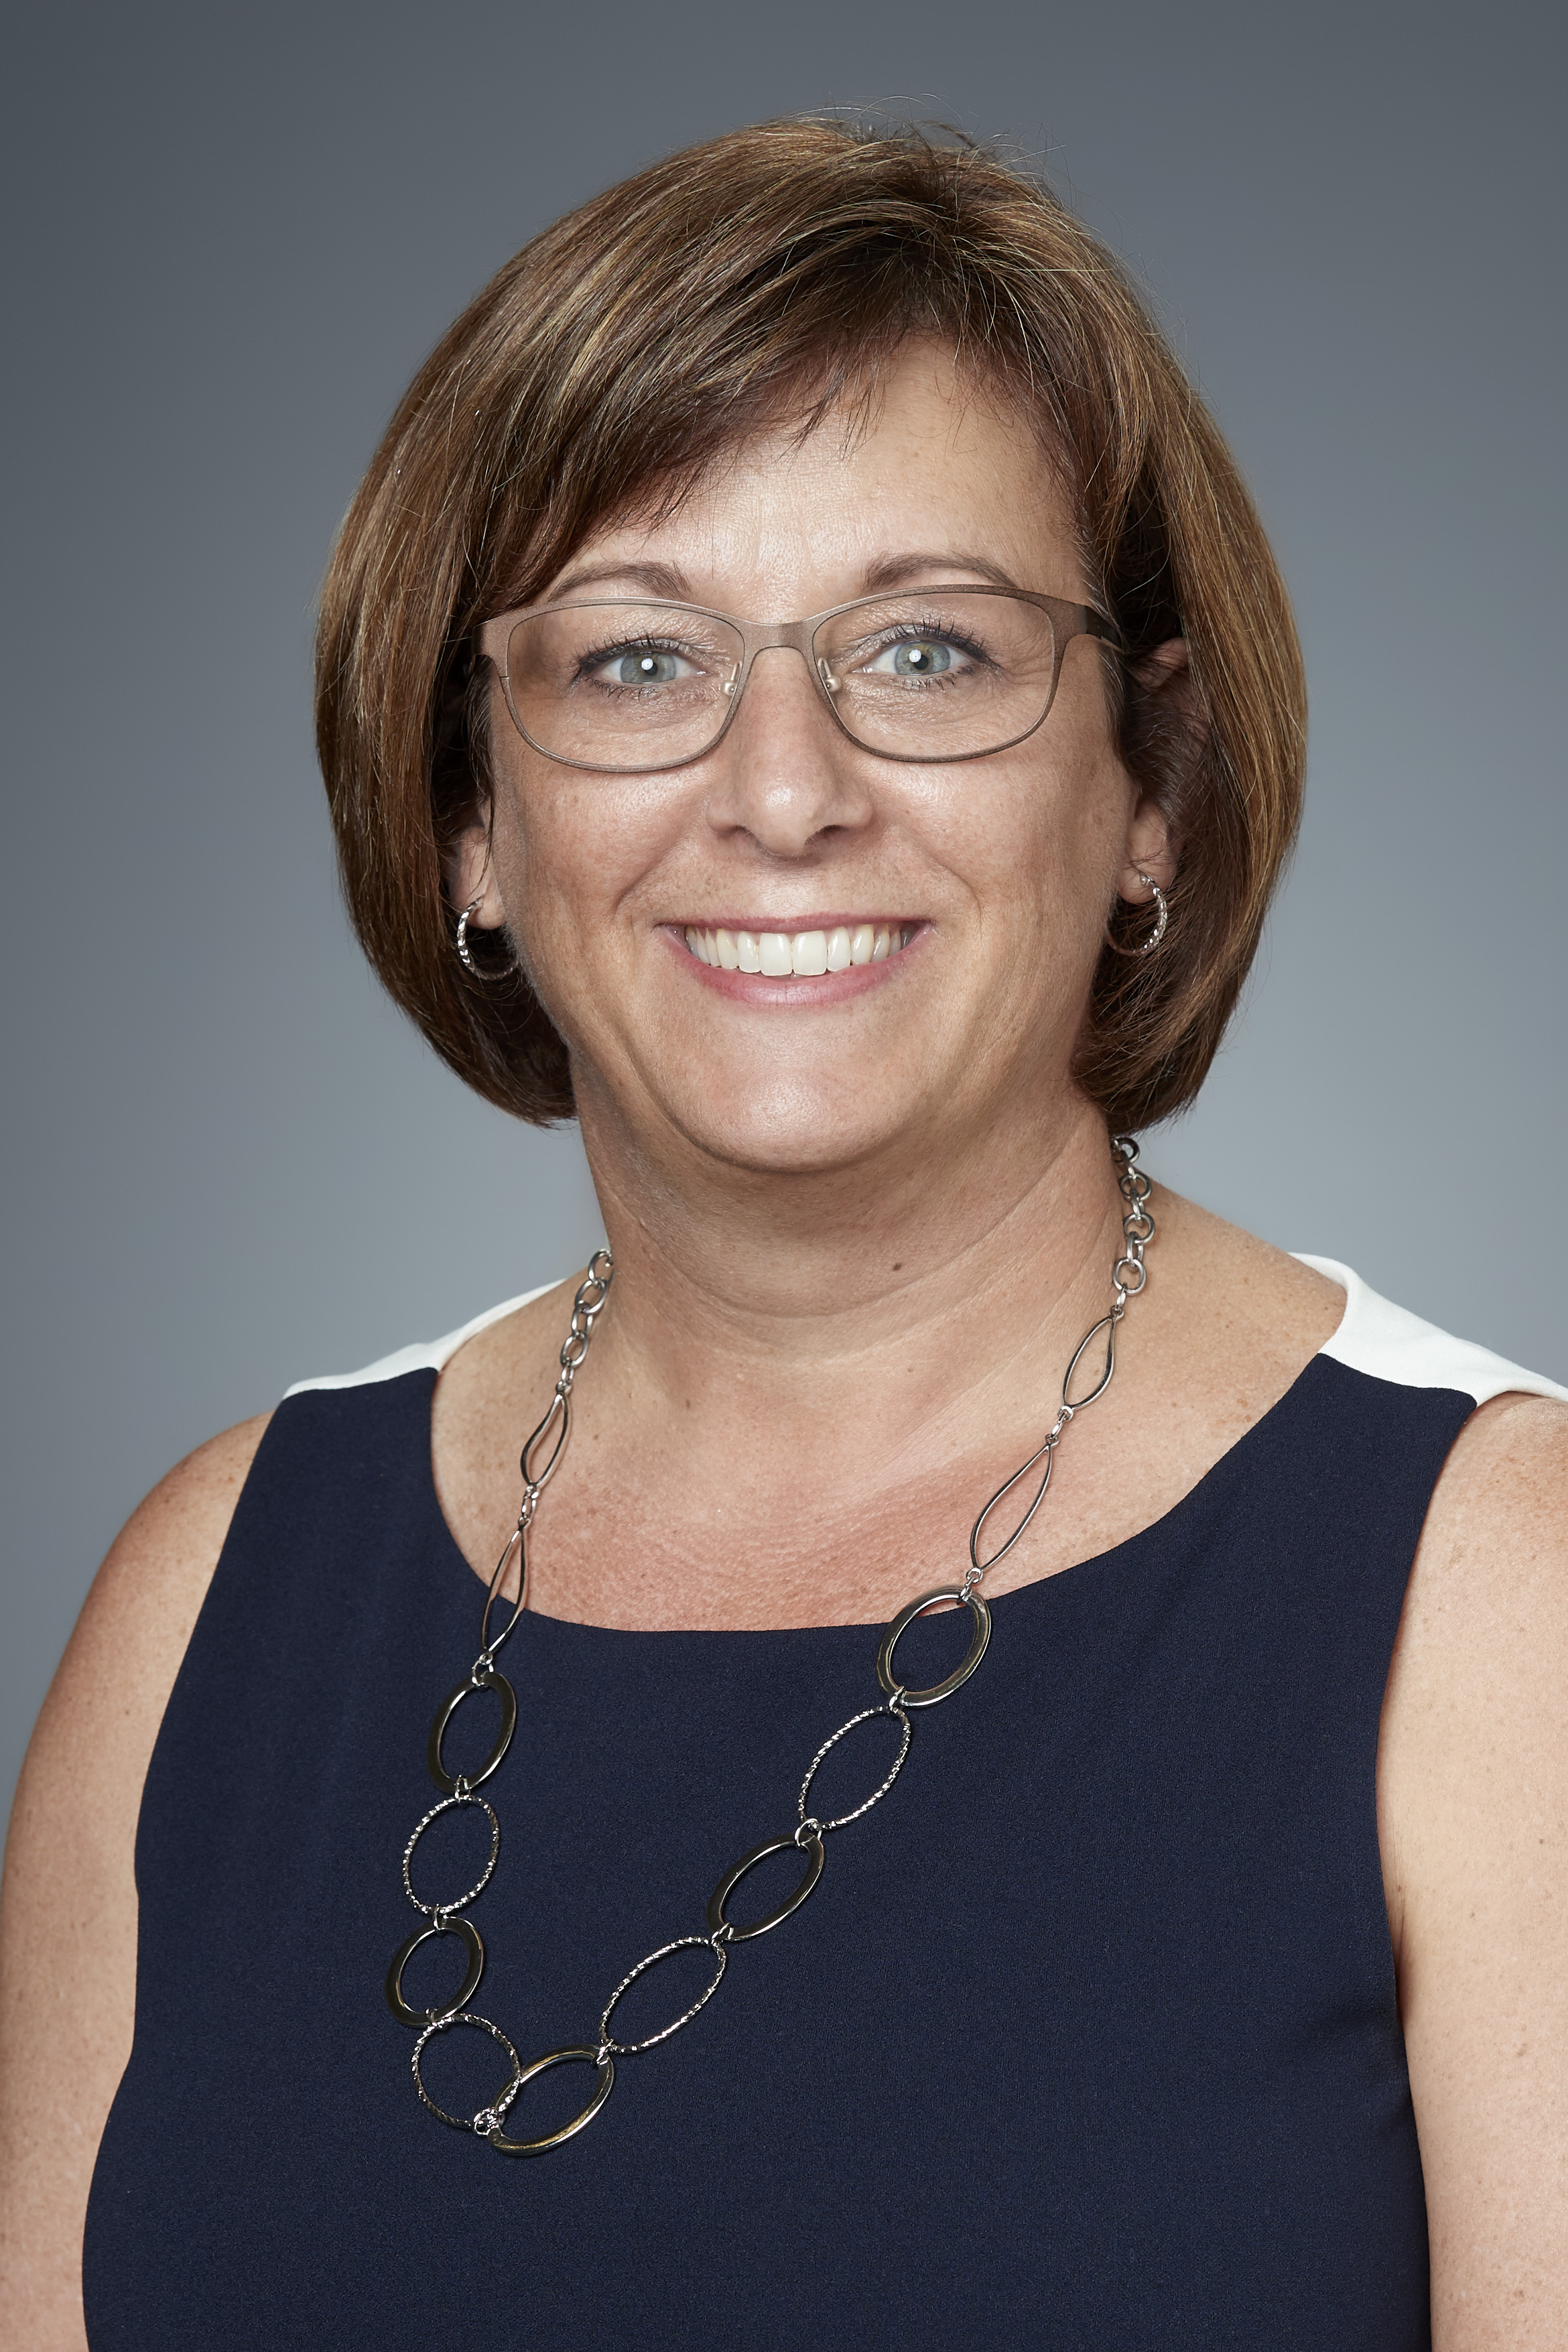 image of Superintendent of Education Janine Bowyer